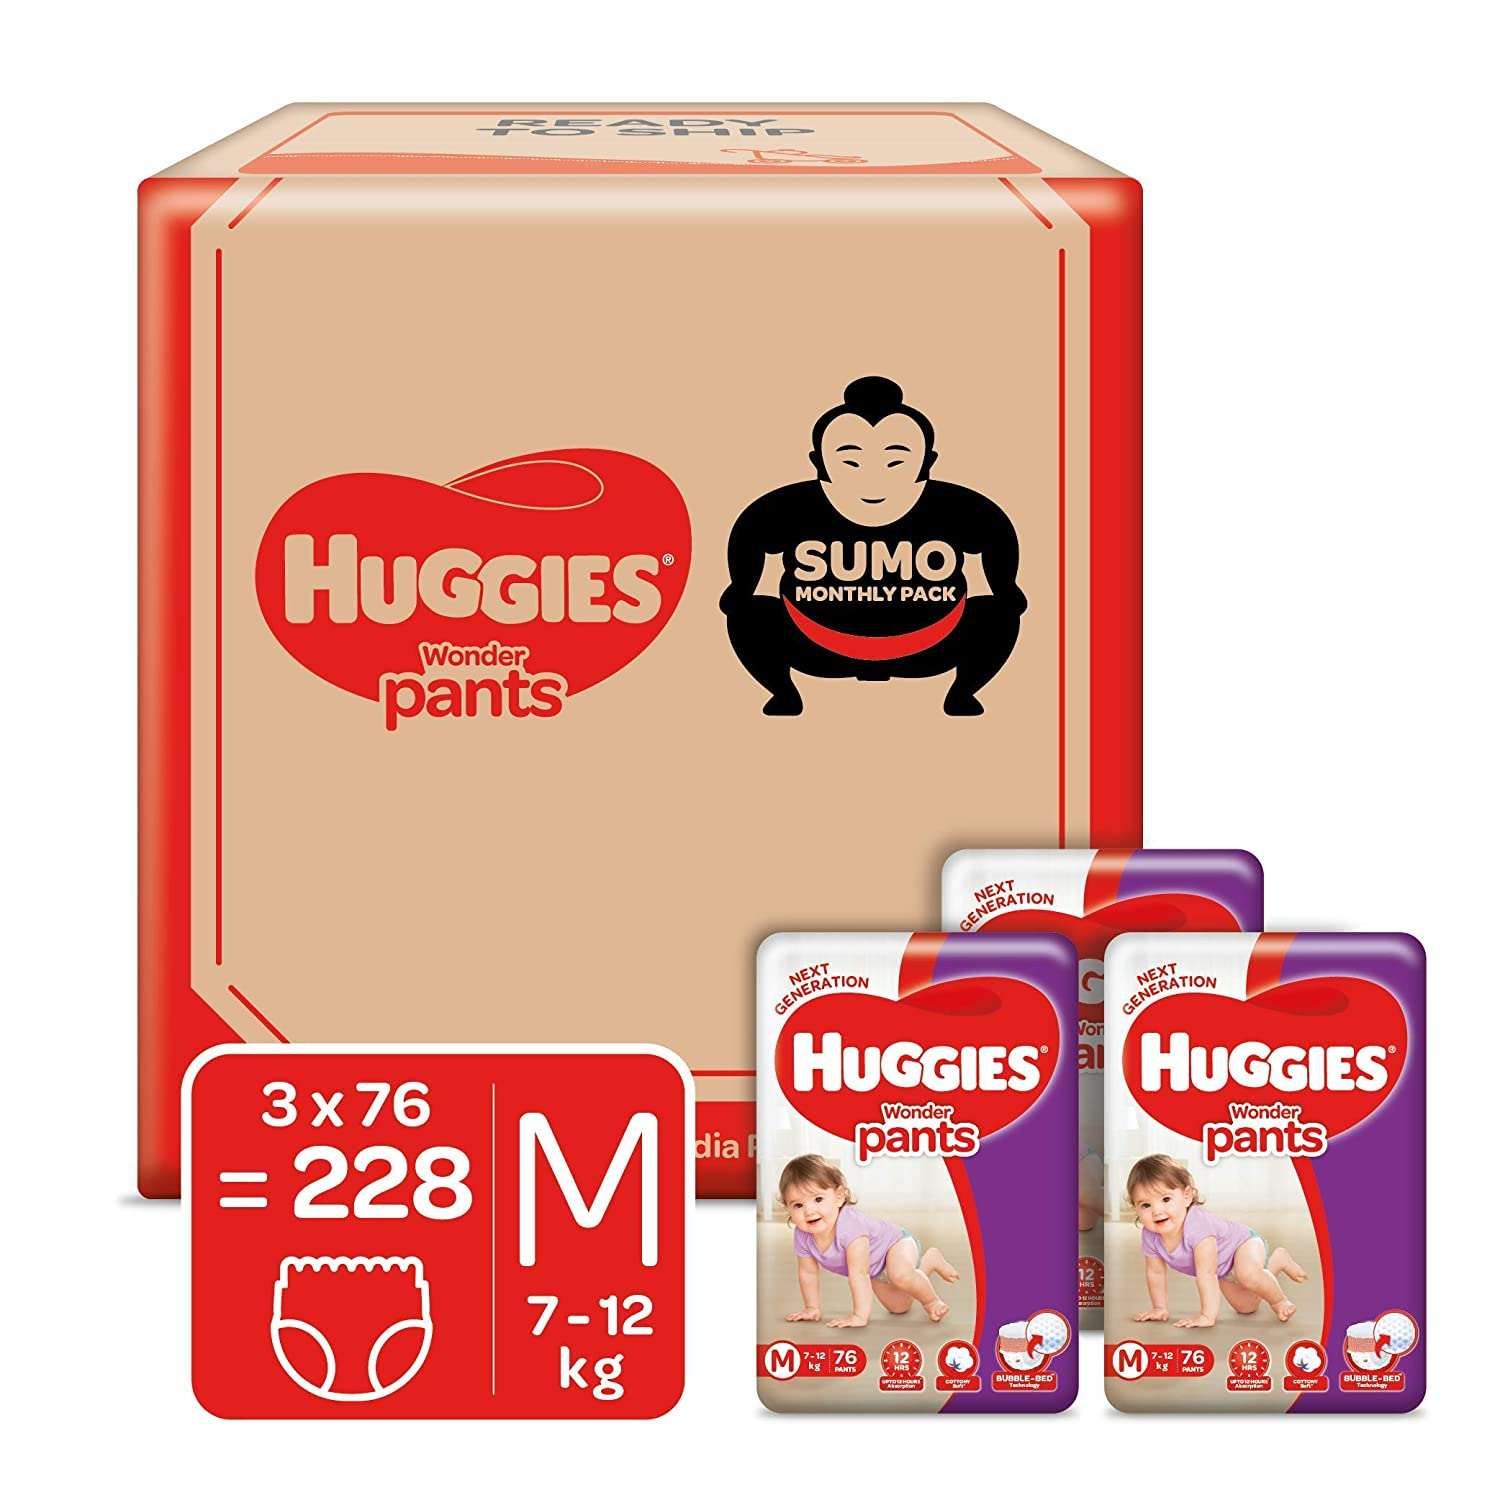 Huggies Wonder Pants, Sumo Monthly Box Pack Diapers, Medium Size, 228 Count